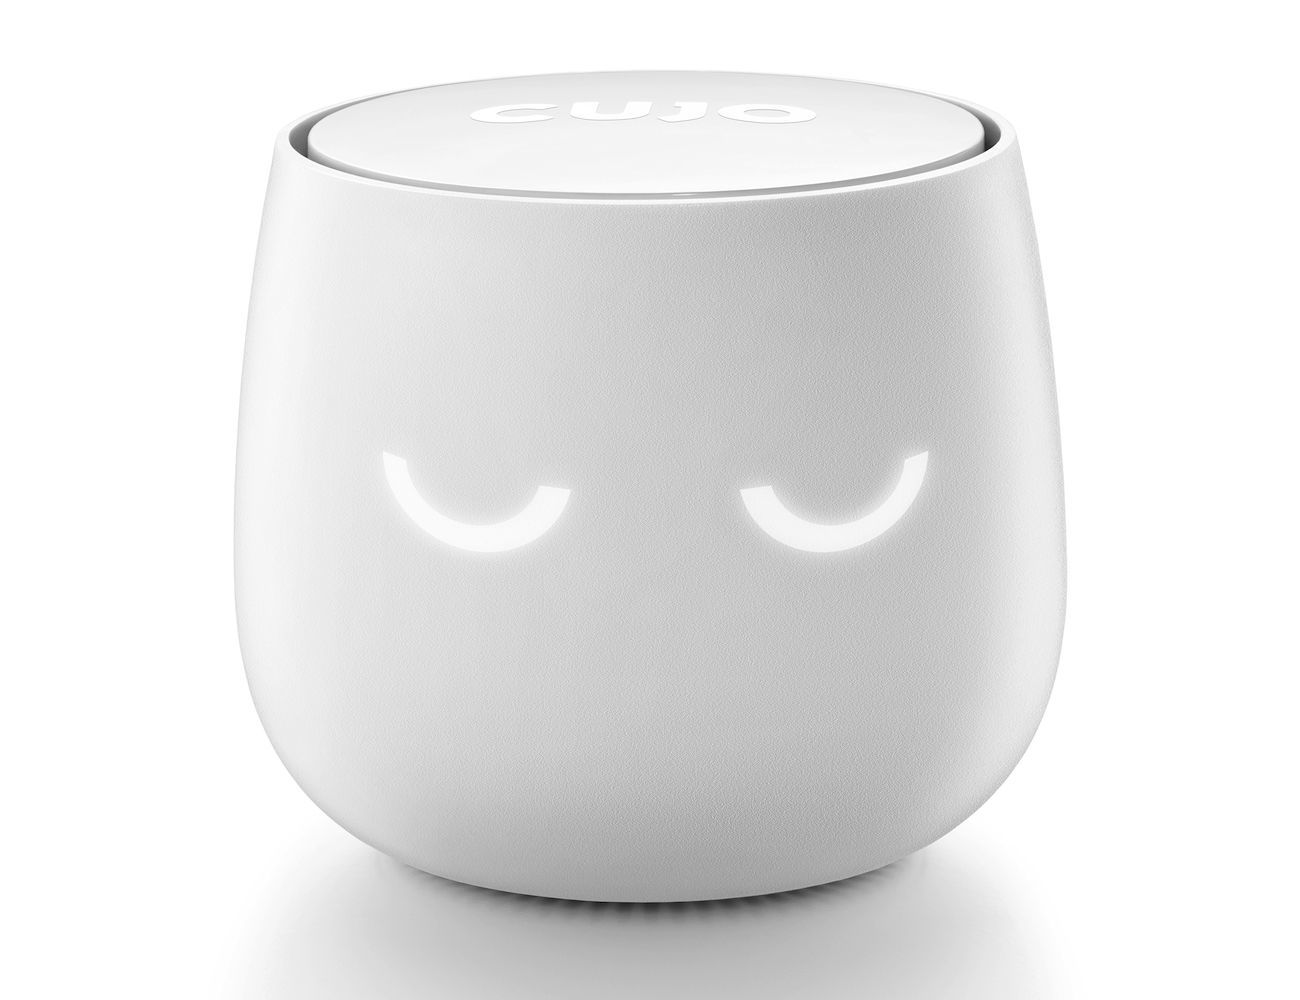 CUJO Smart Home Firewall Device